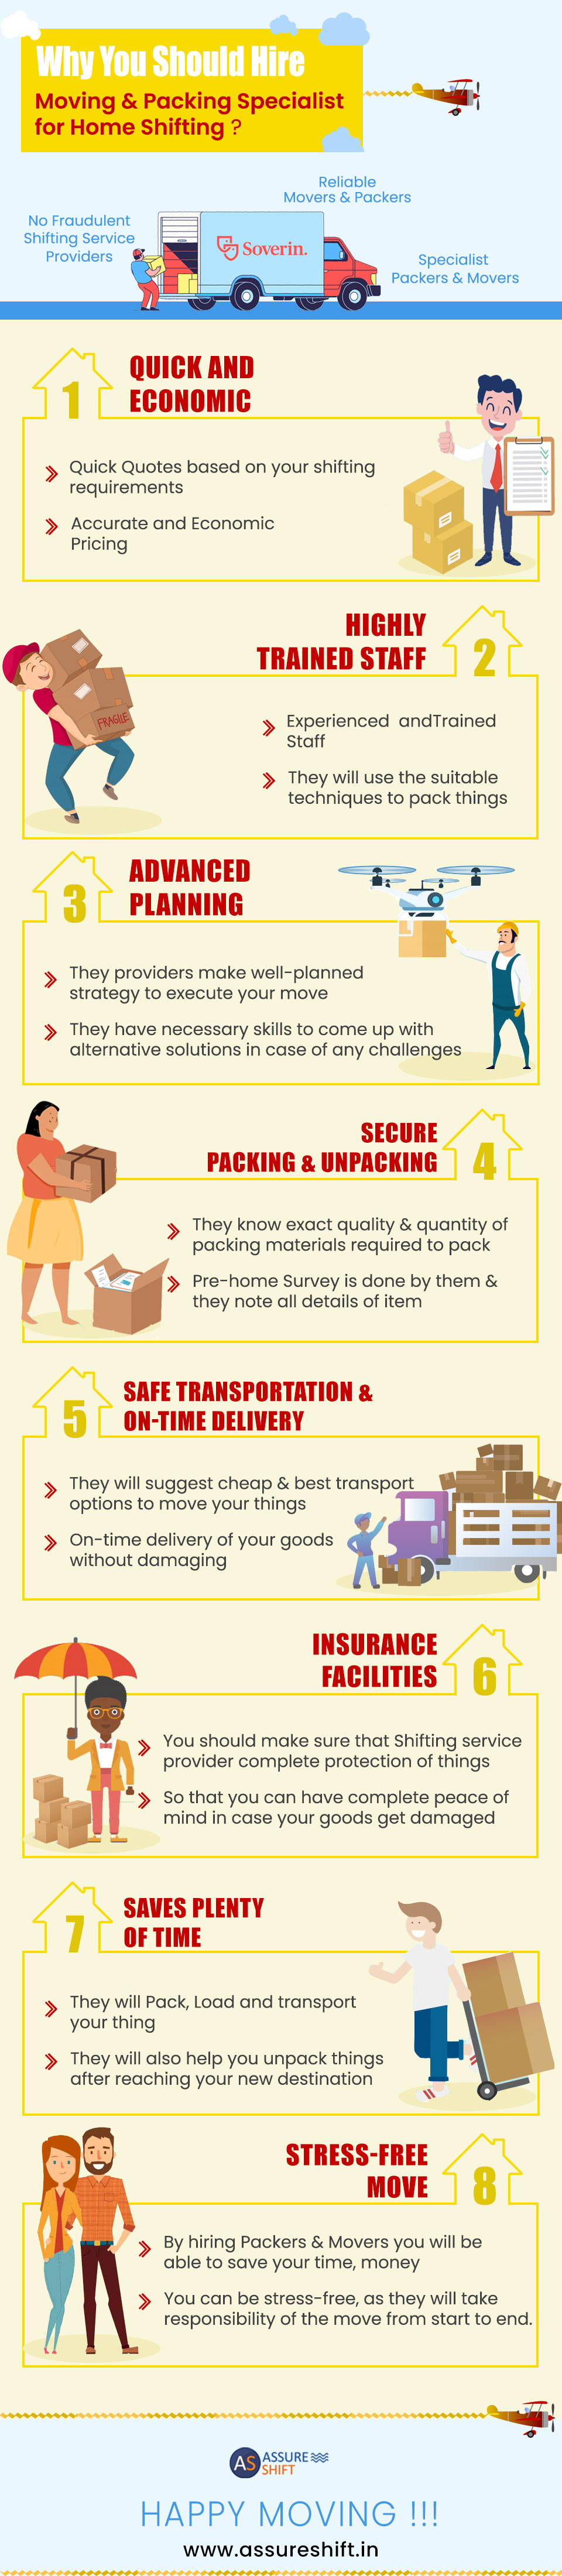 Why You Should Hire Moving and Packing Specialists for Home Shifting?